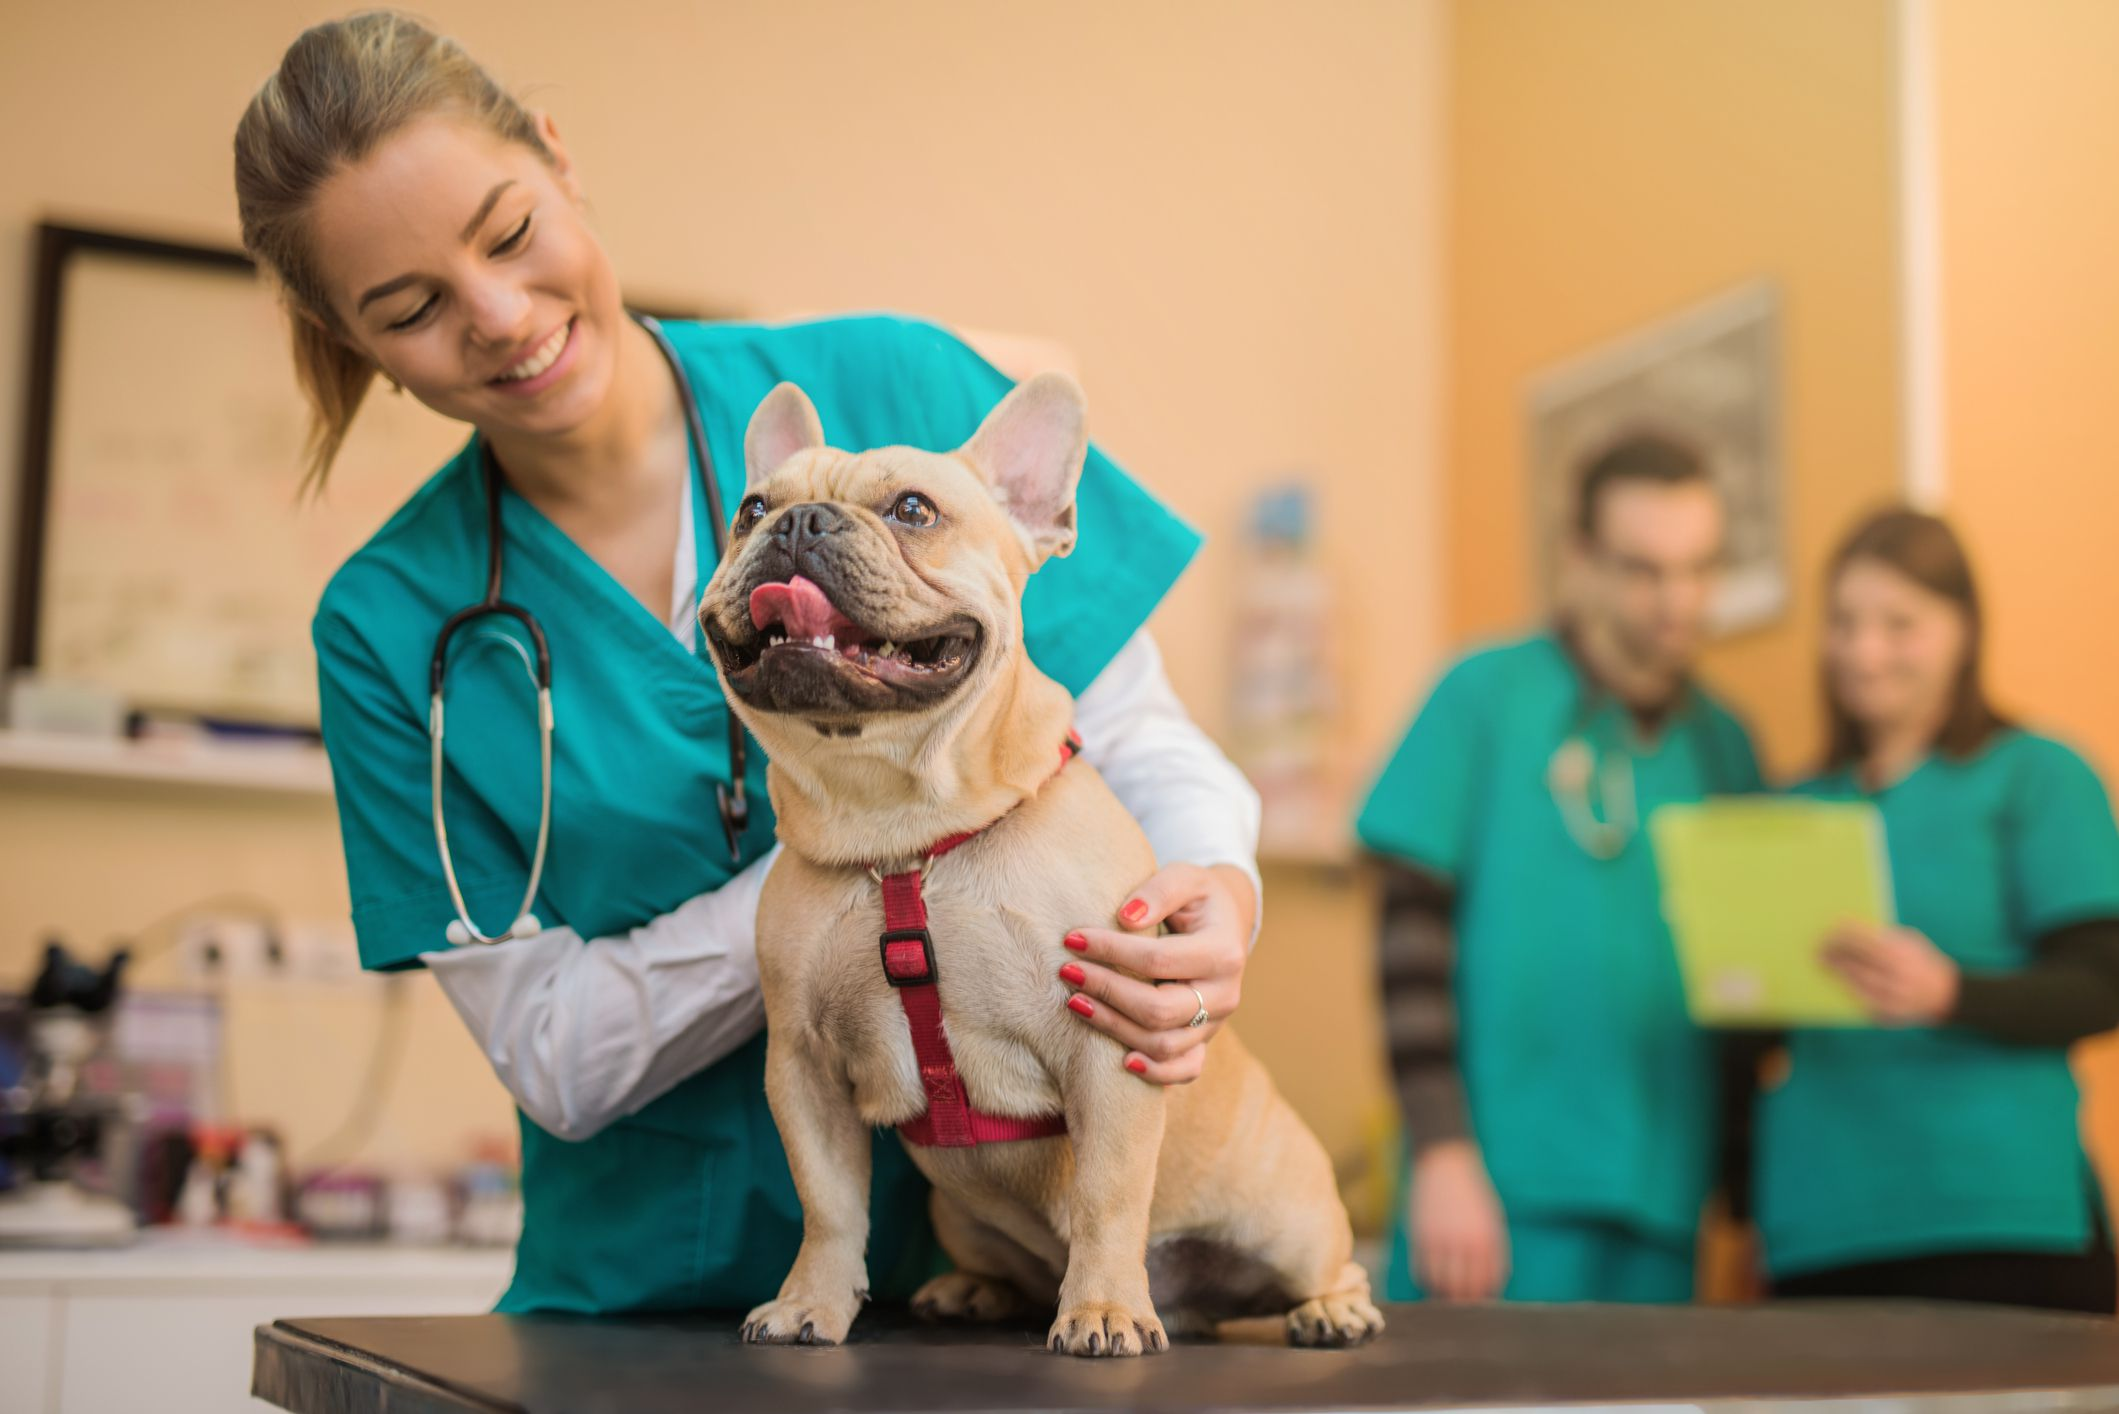 Safety Tips for Working With Animals